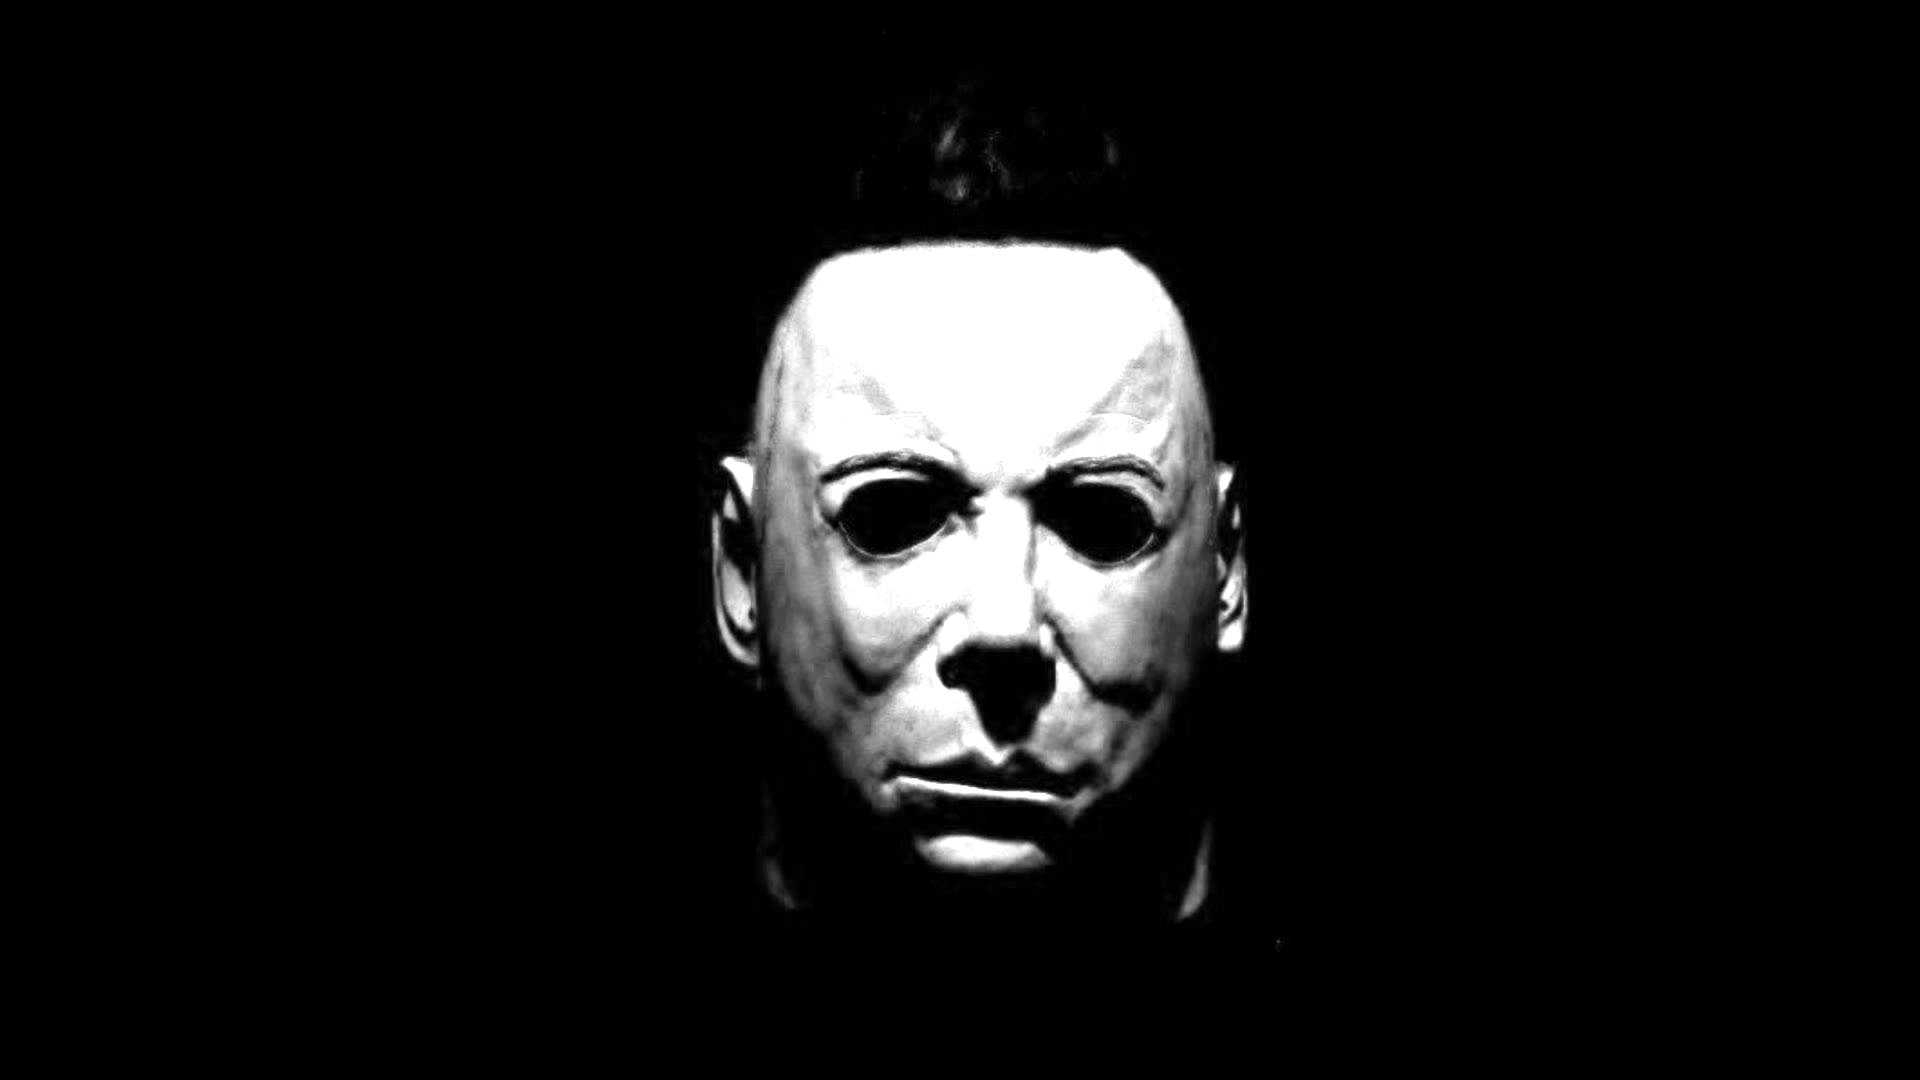 michael myers live wallpaper hd images 4k desktop tapete of androids